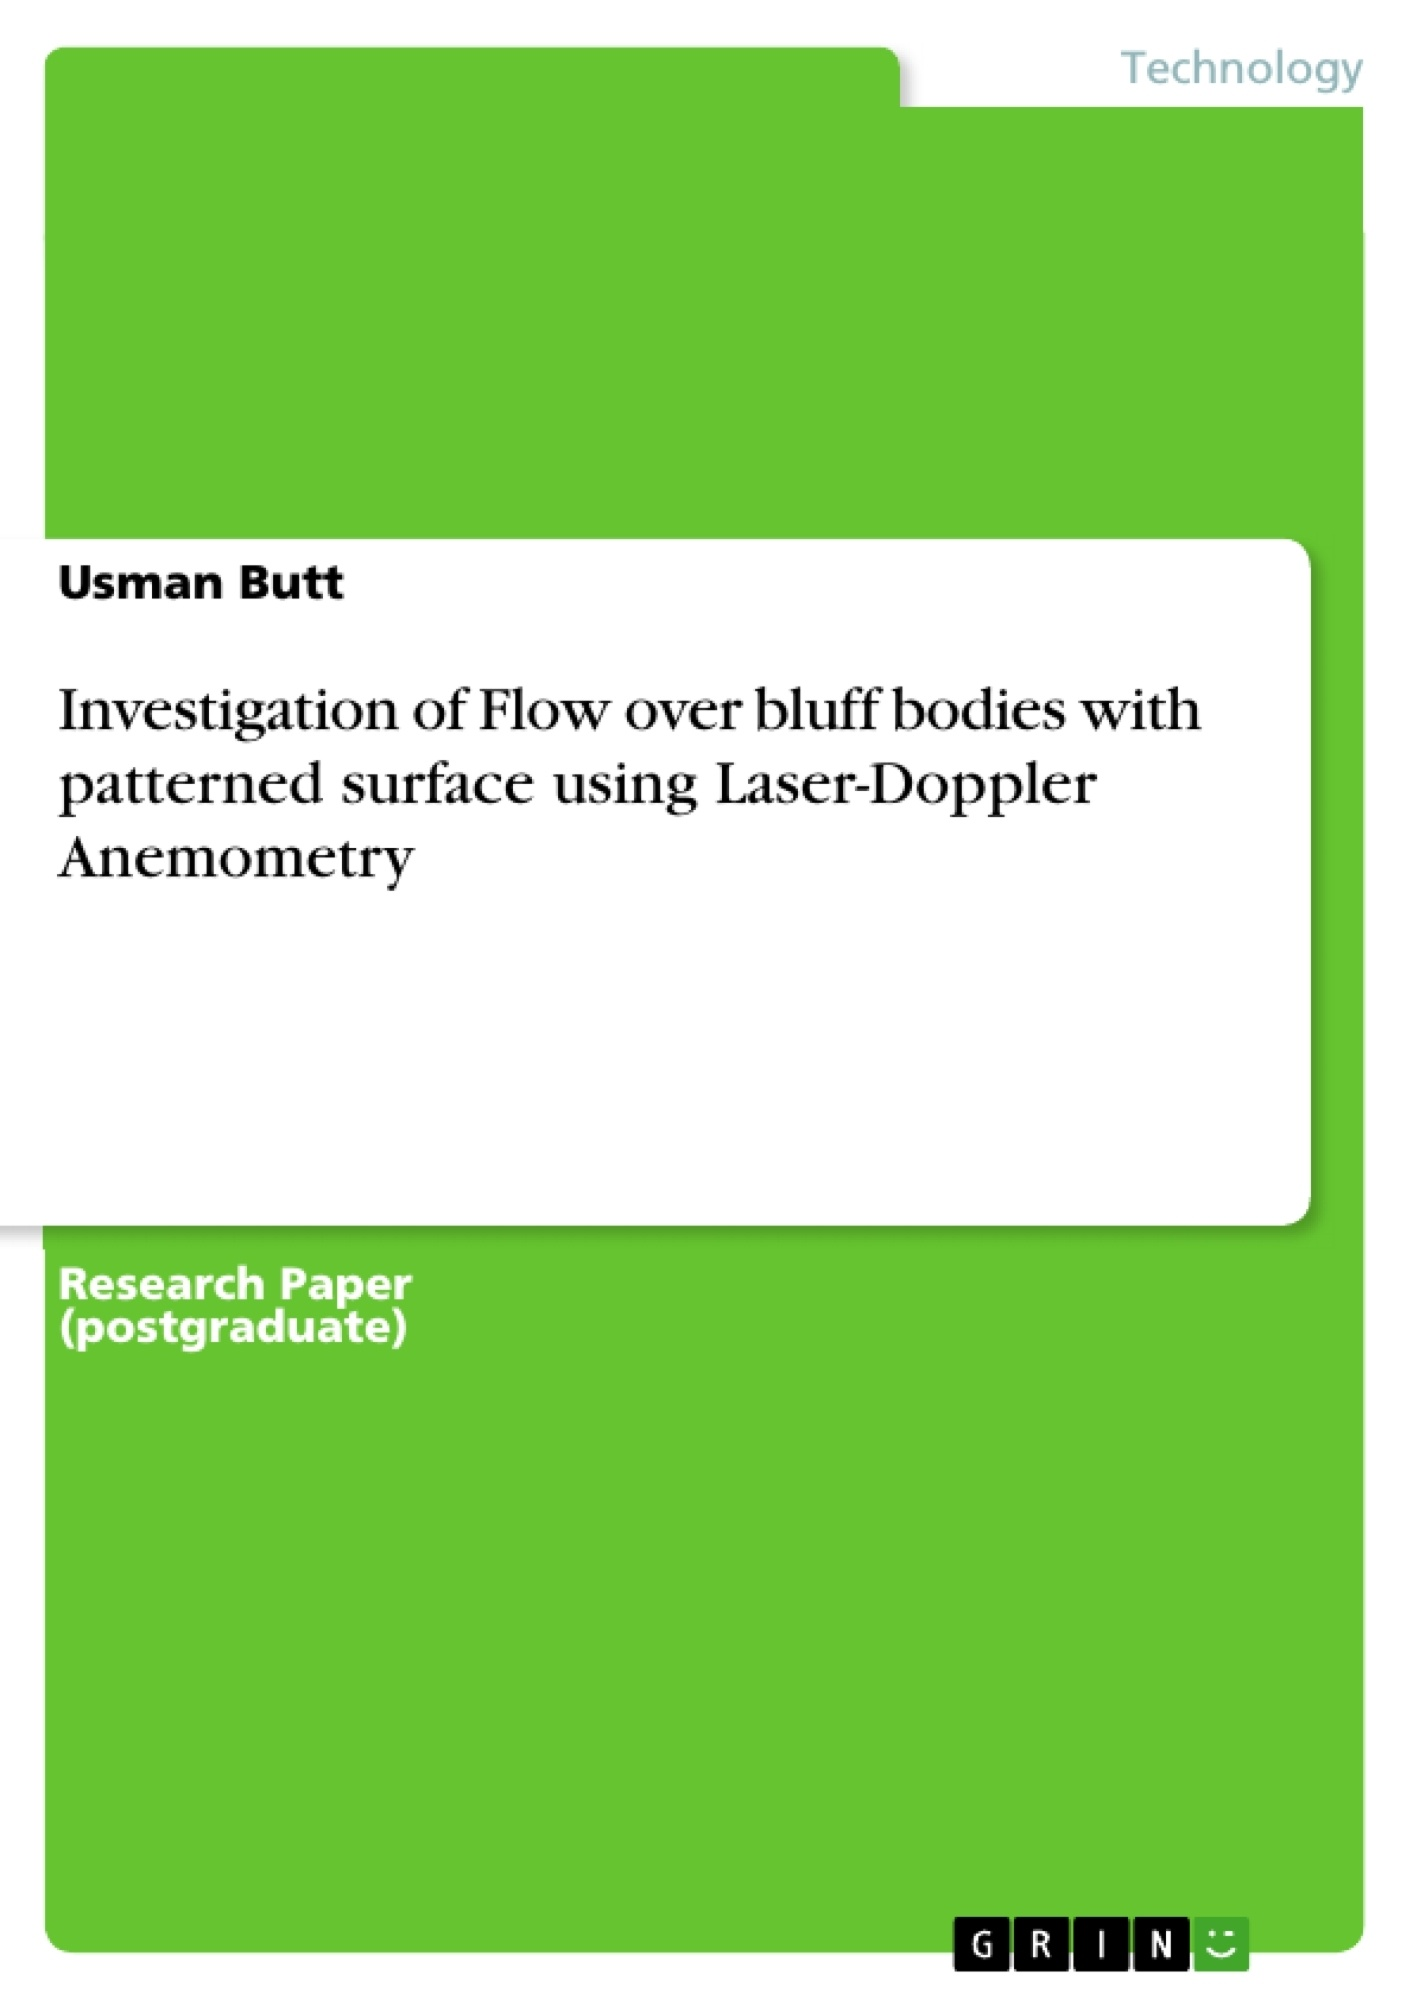 Title: Investigation of Flow over bluff bodies with patterned surface using Laser-Doppler Anemometry